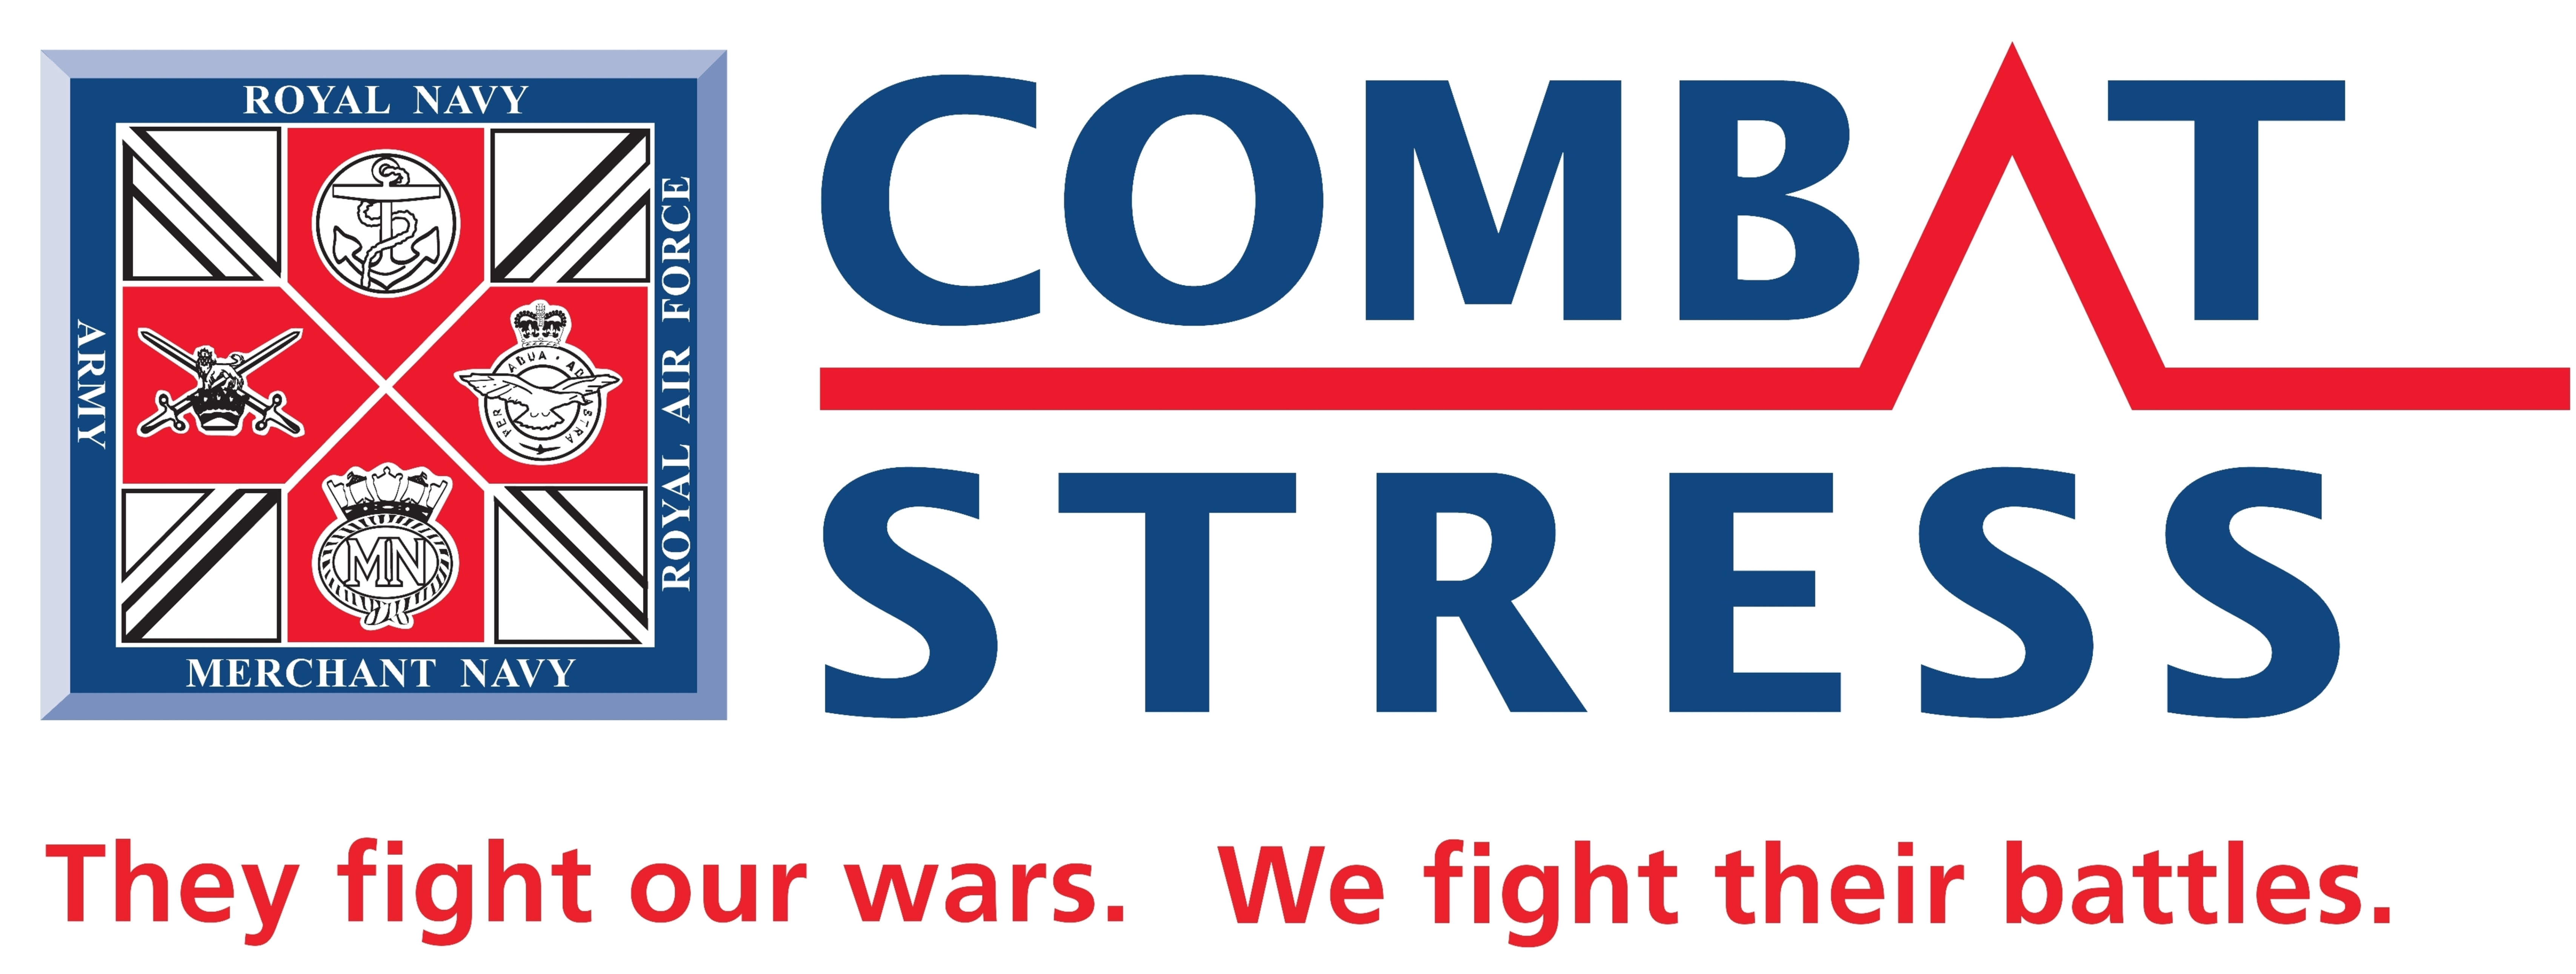 cs-logo-they-fight-our-wars.jpg